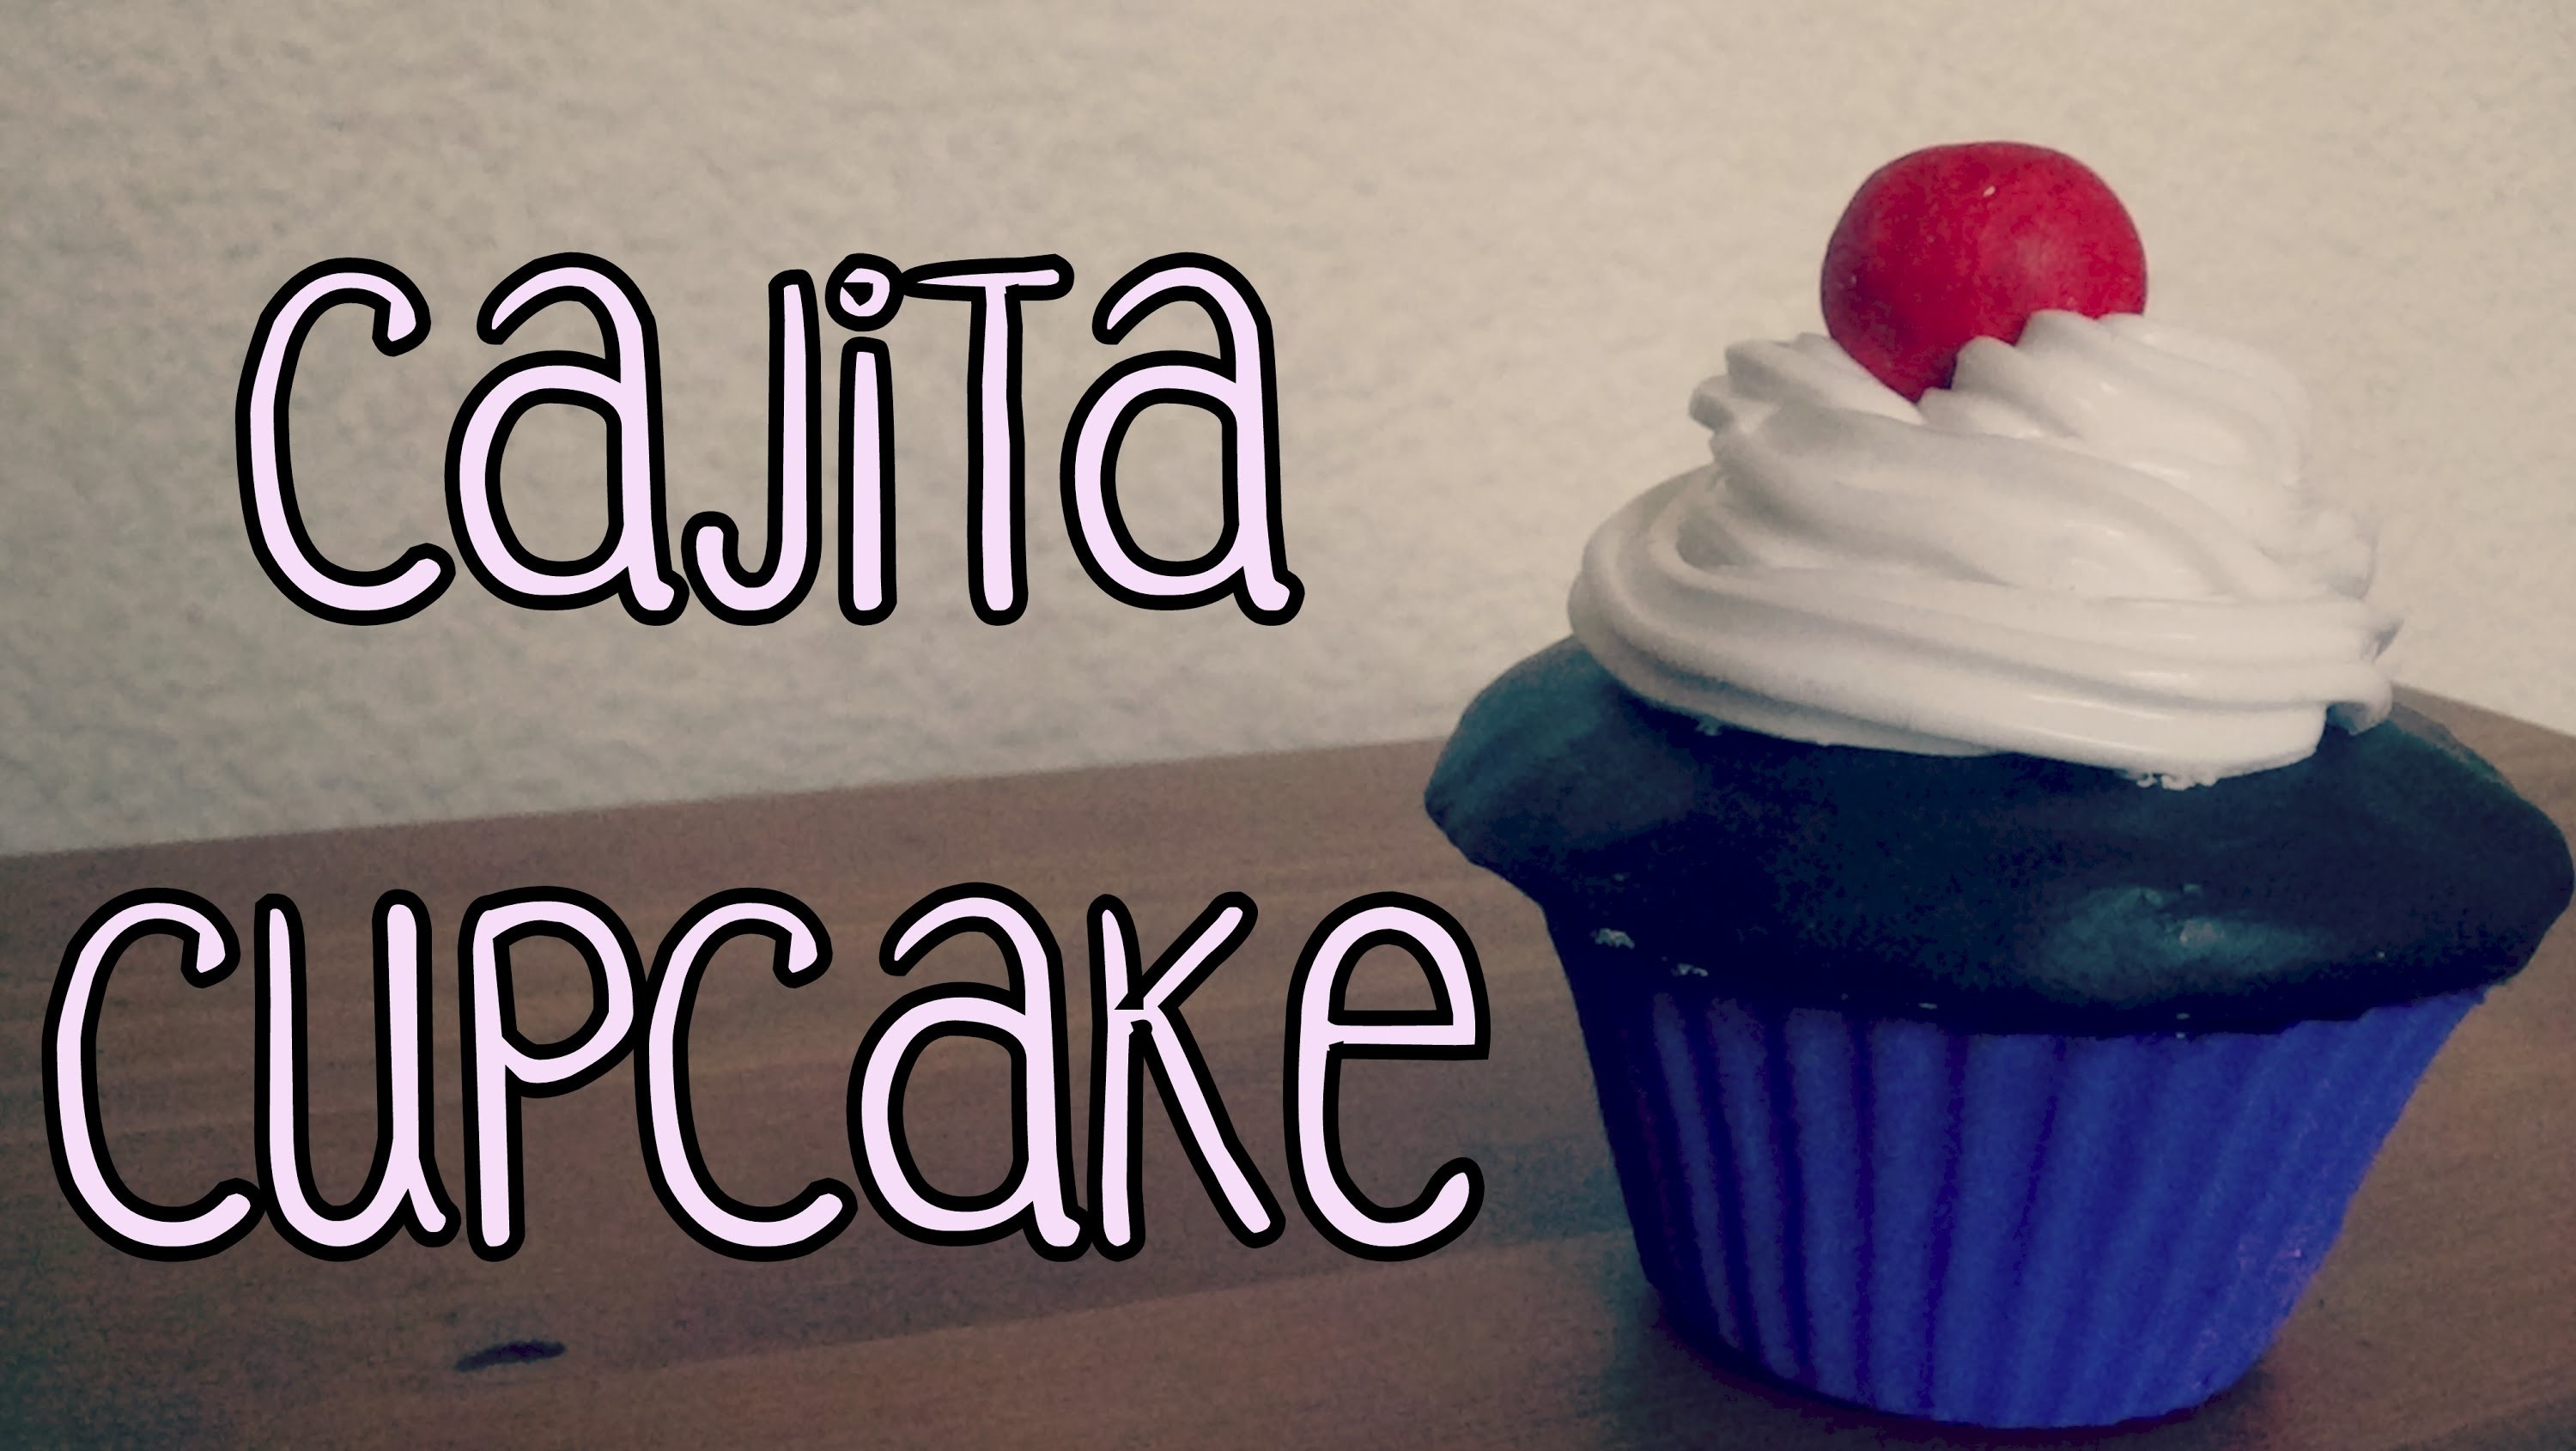 Cajita Cup Cake Cute. Para regalar o decorar! ^^